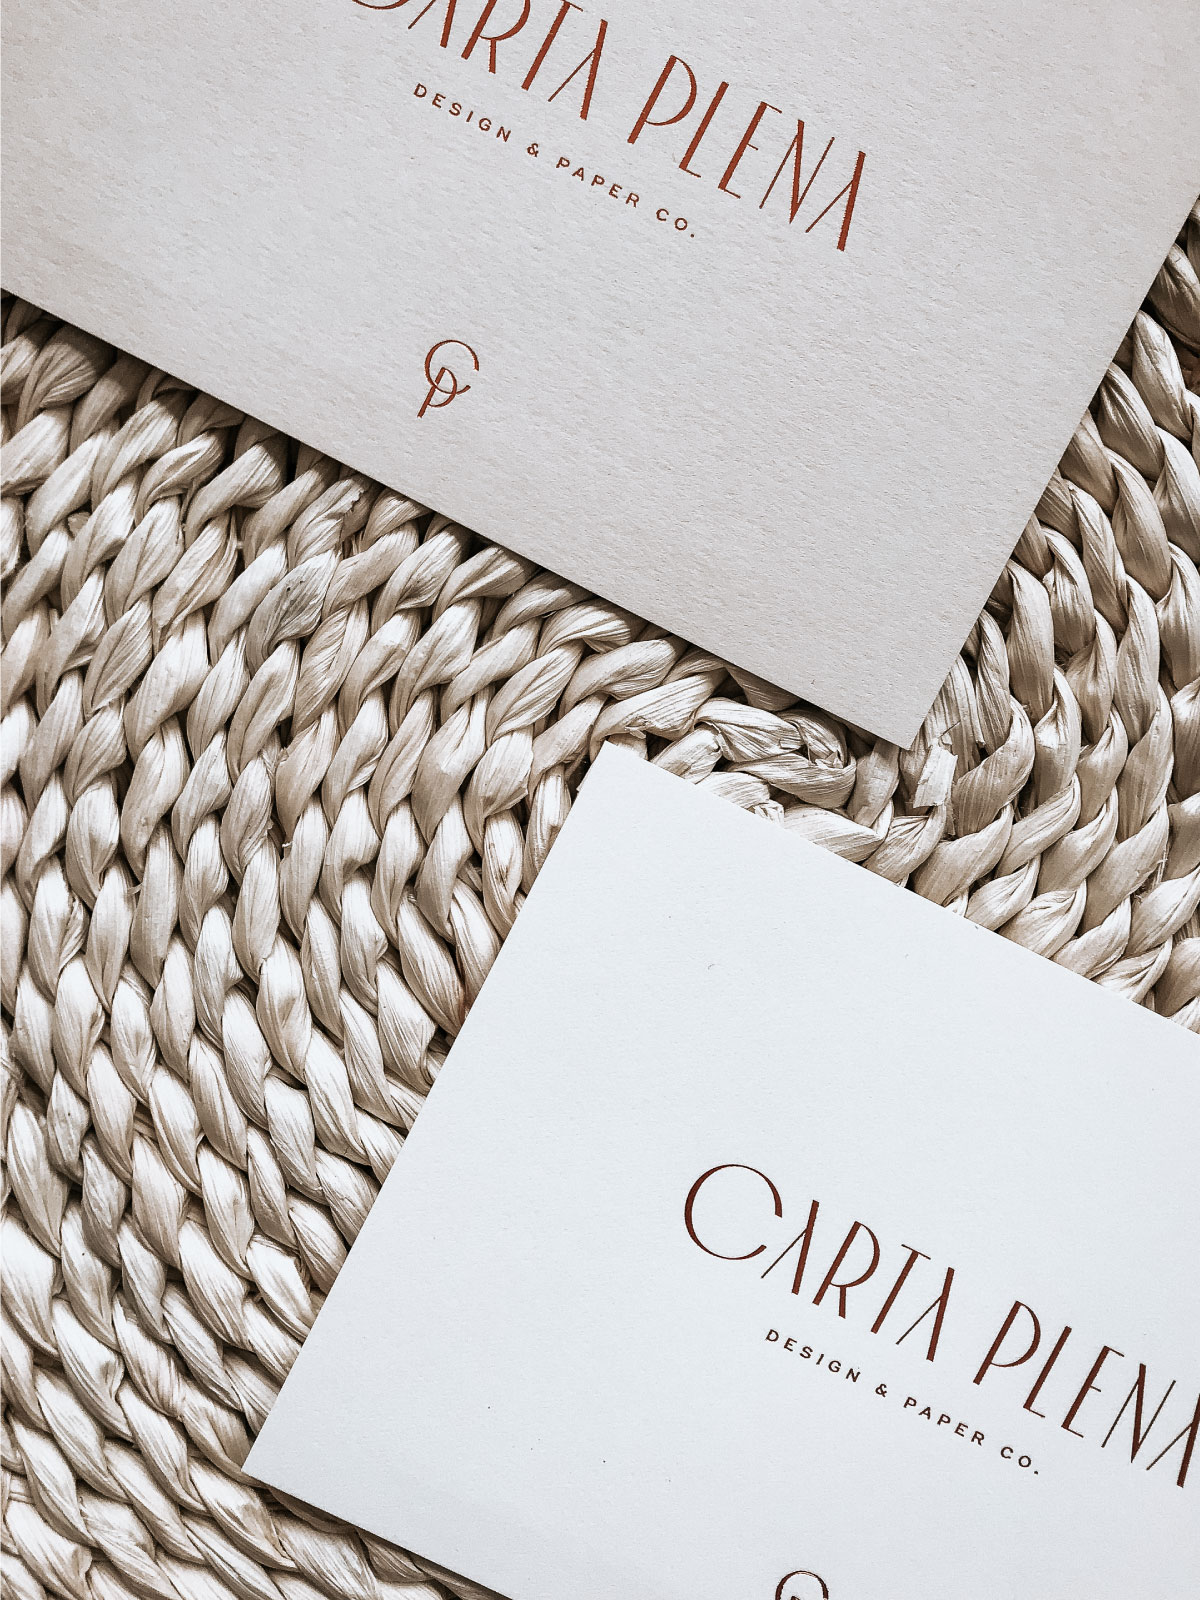 Carta Plena Custom Brand and Web Design by Viola Hill Studio